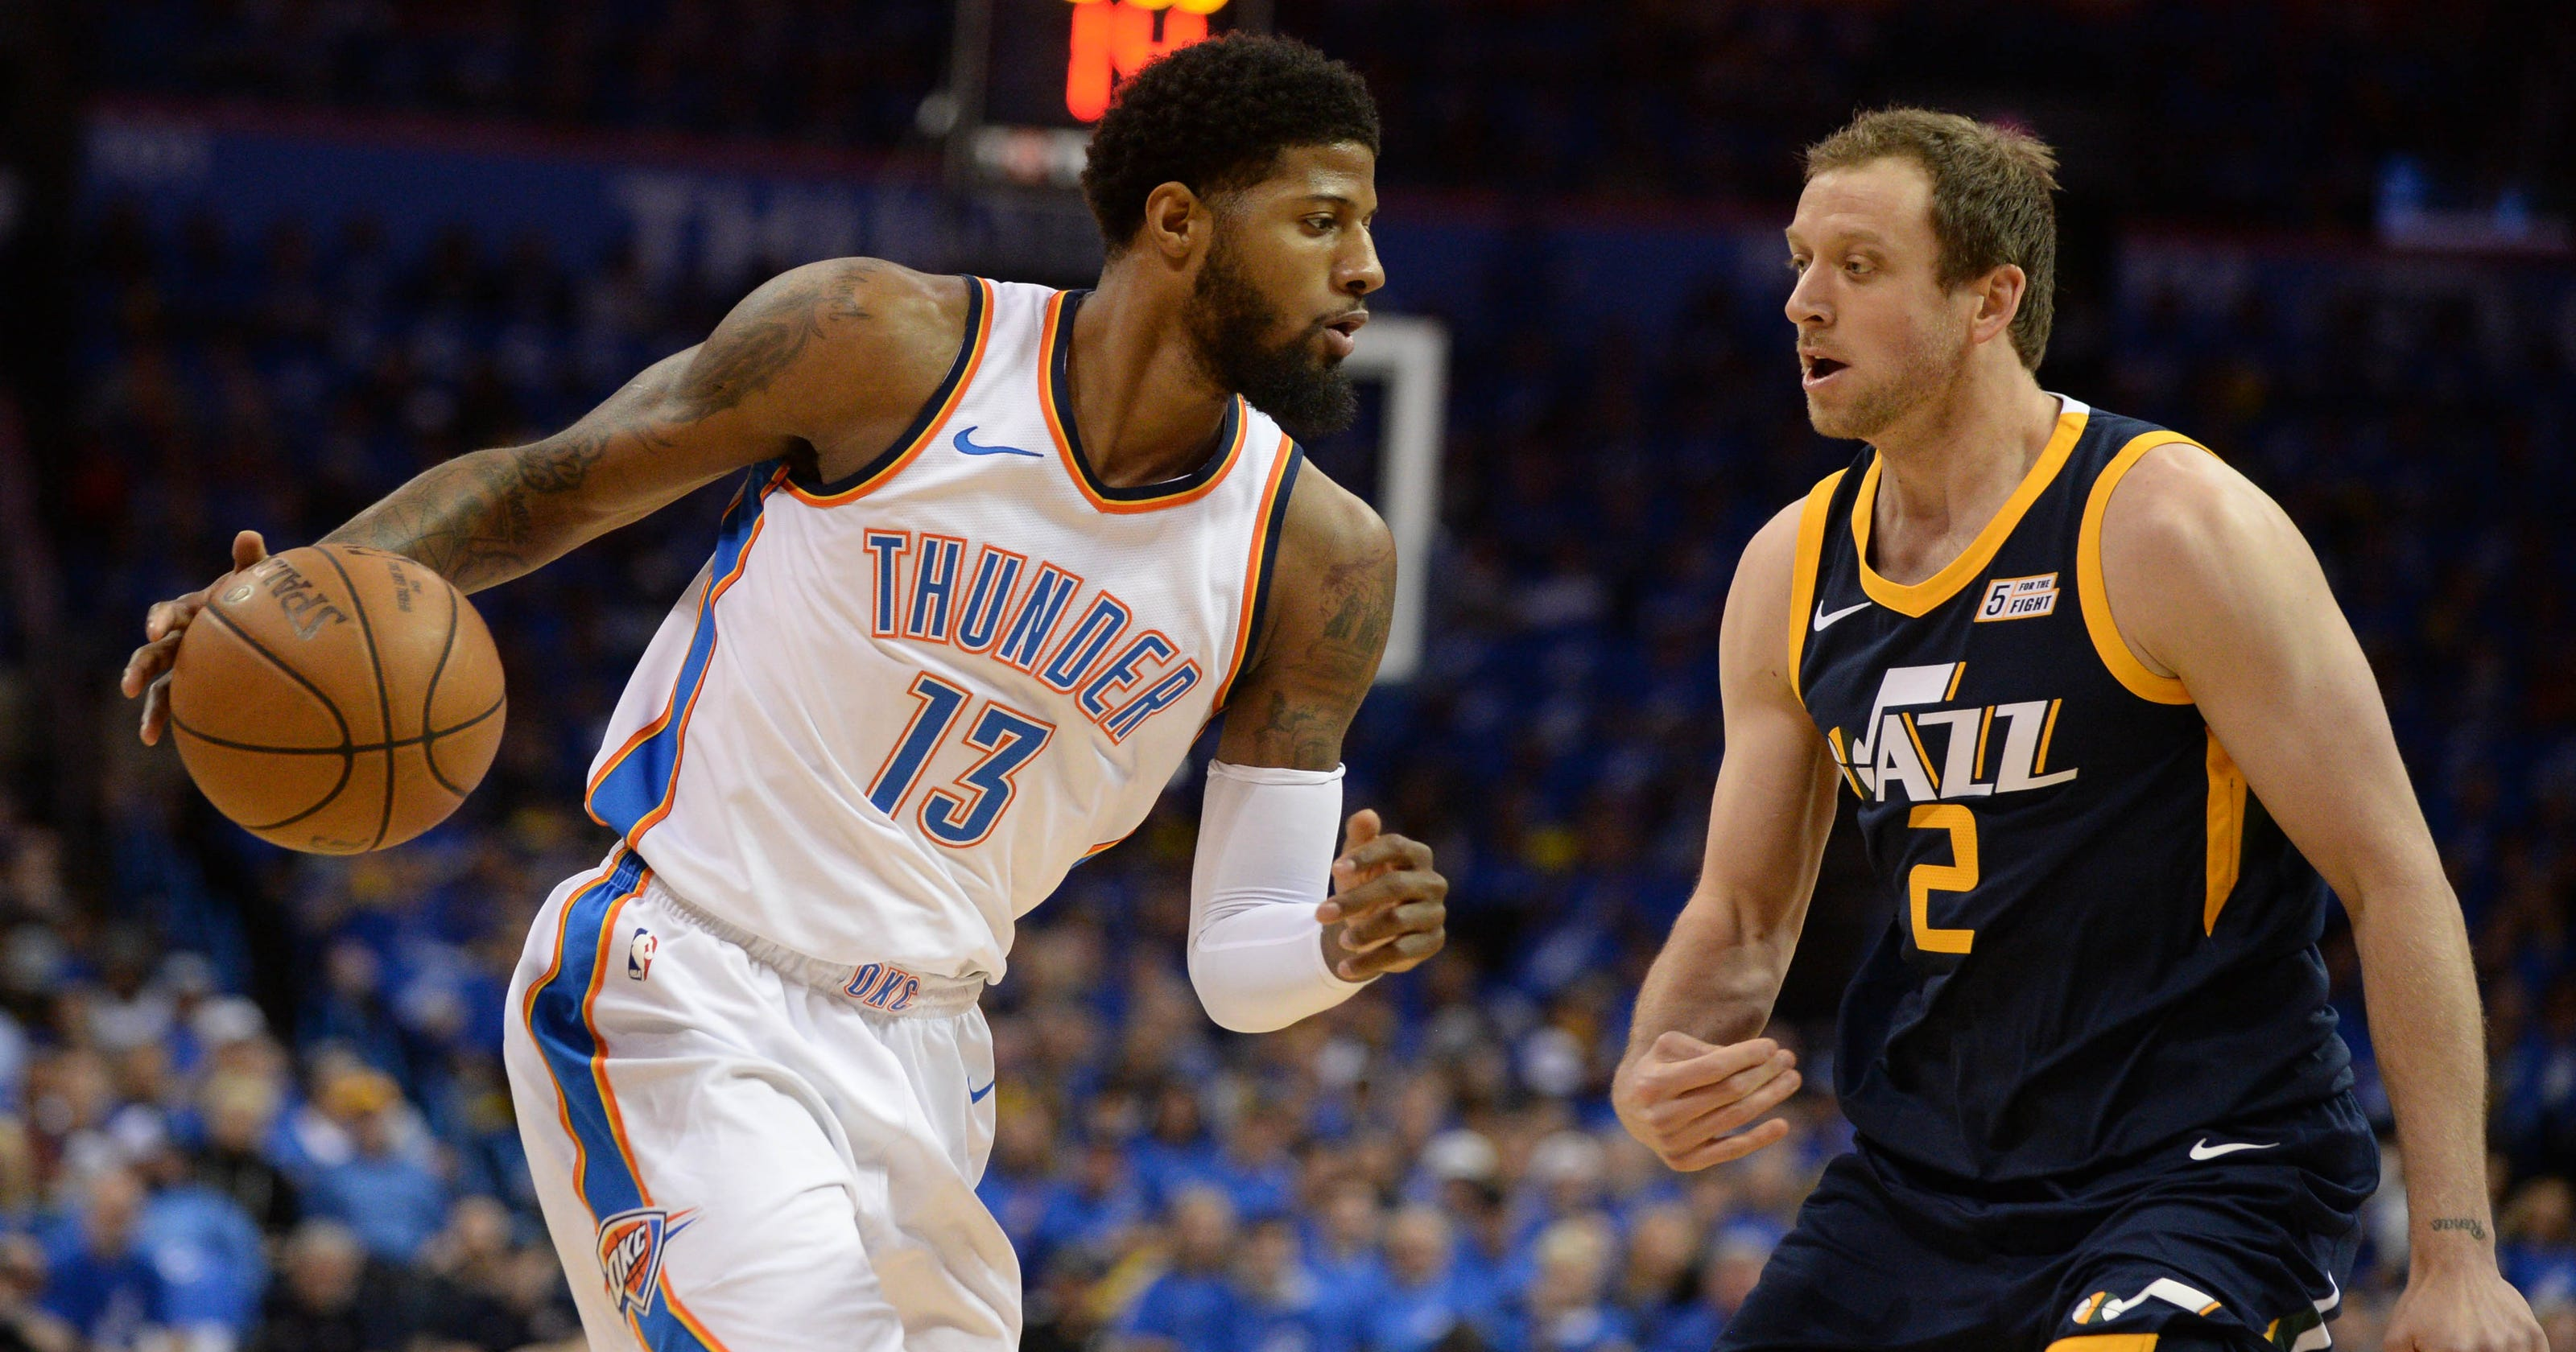 ab0294e49fc NBA playoffs  Could Paul George s Game 1 be a sign of what s to come